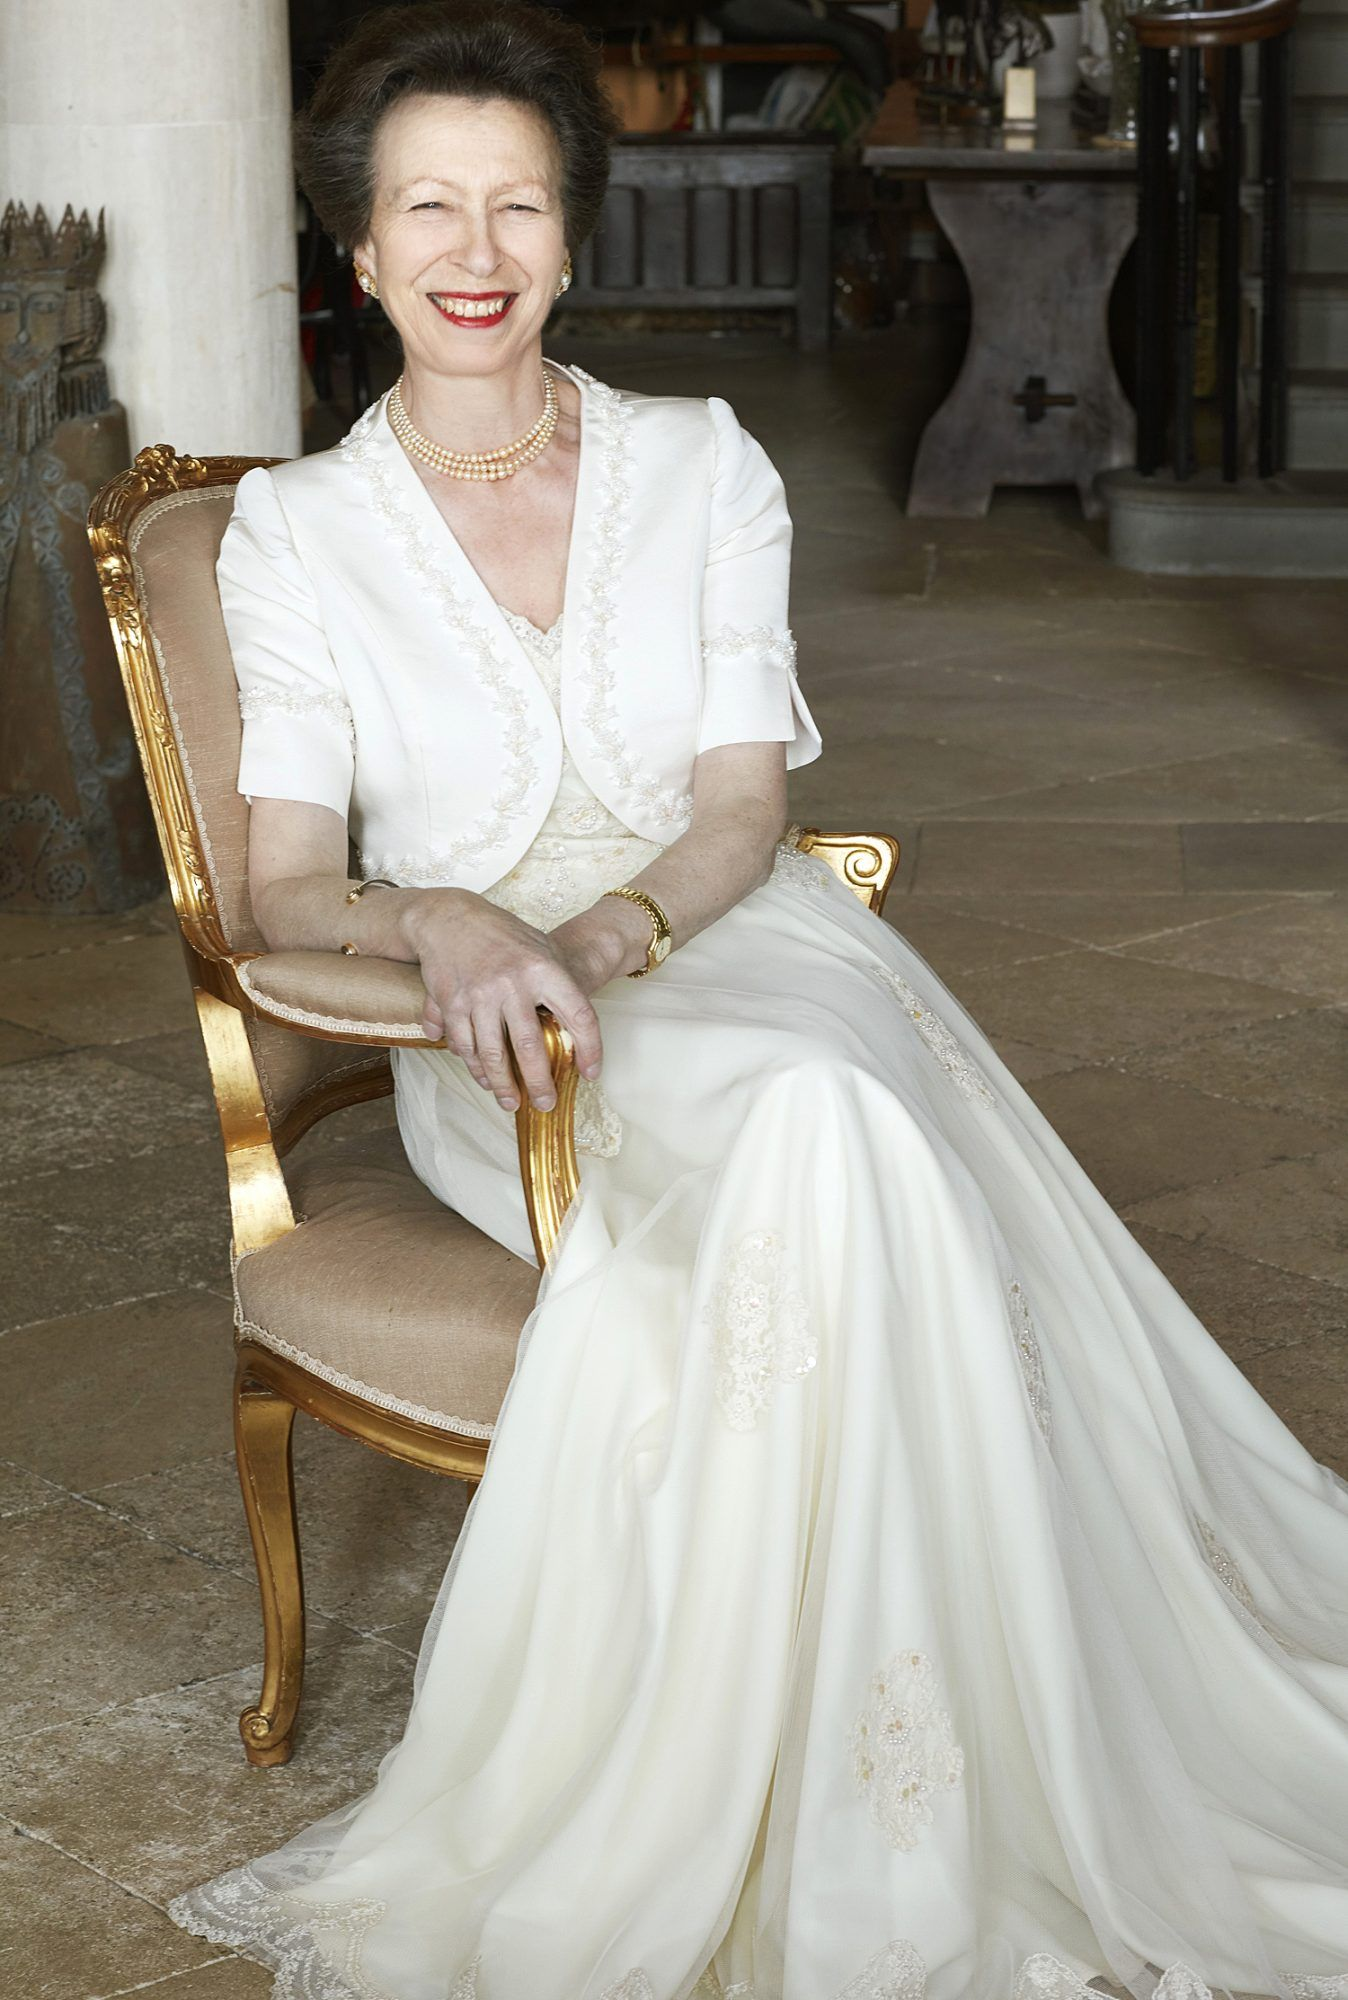 Princess Anne Turns 70! See New Portraits of Queen